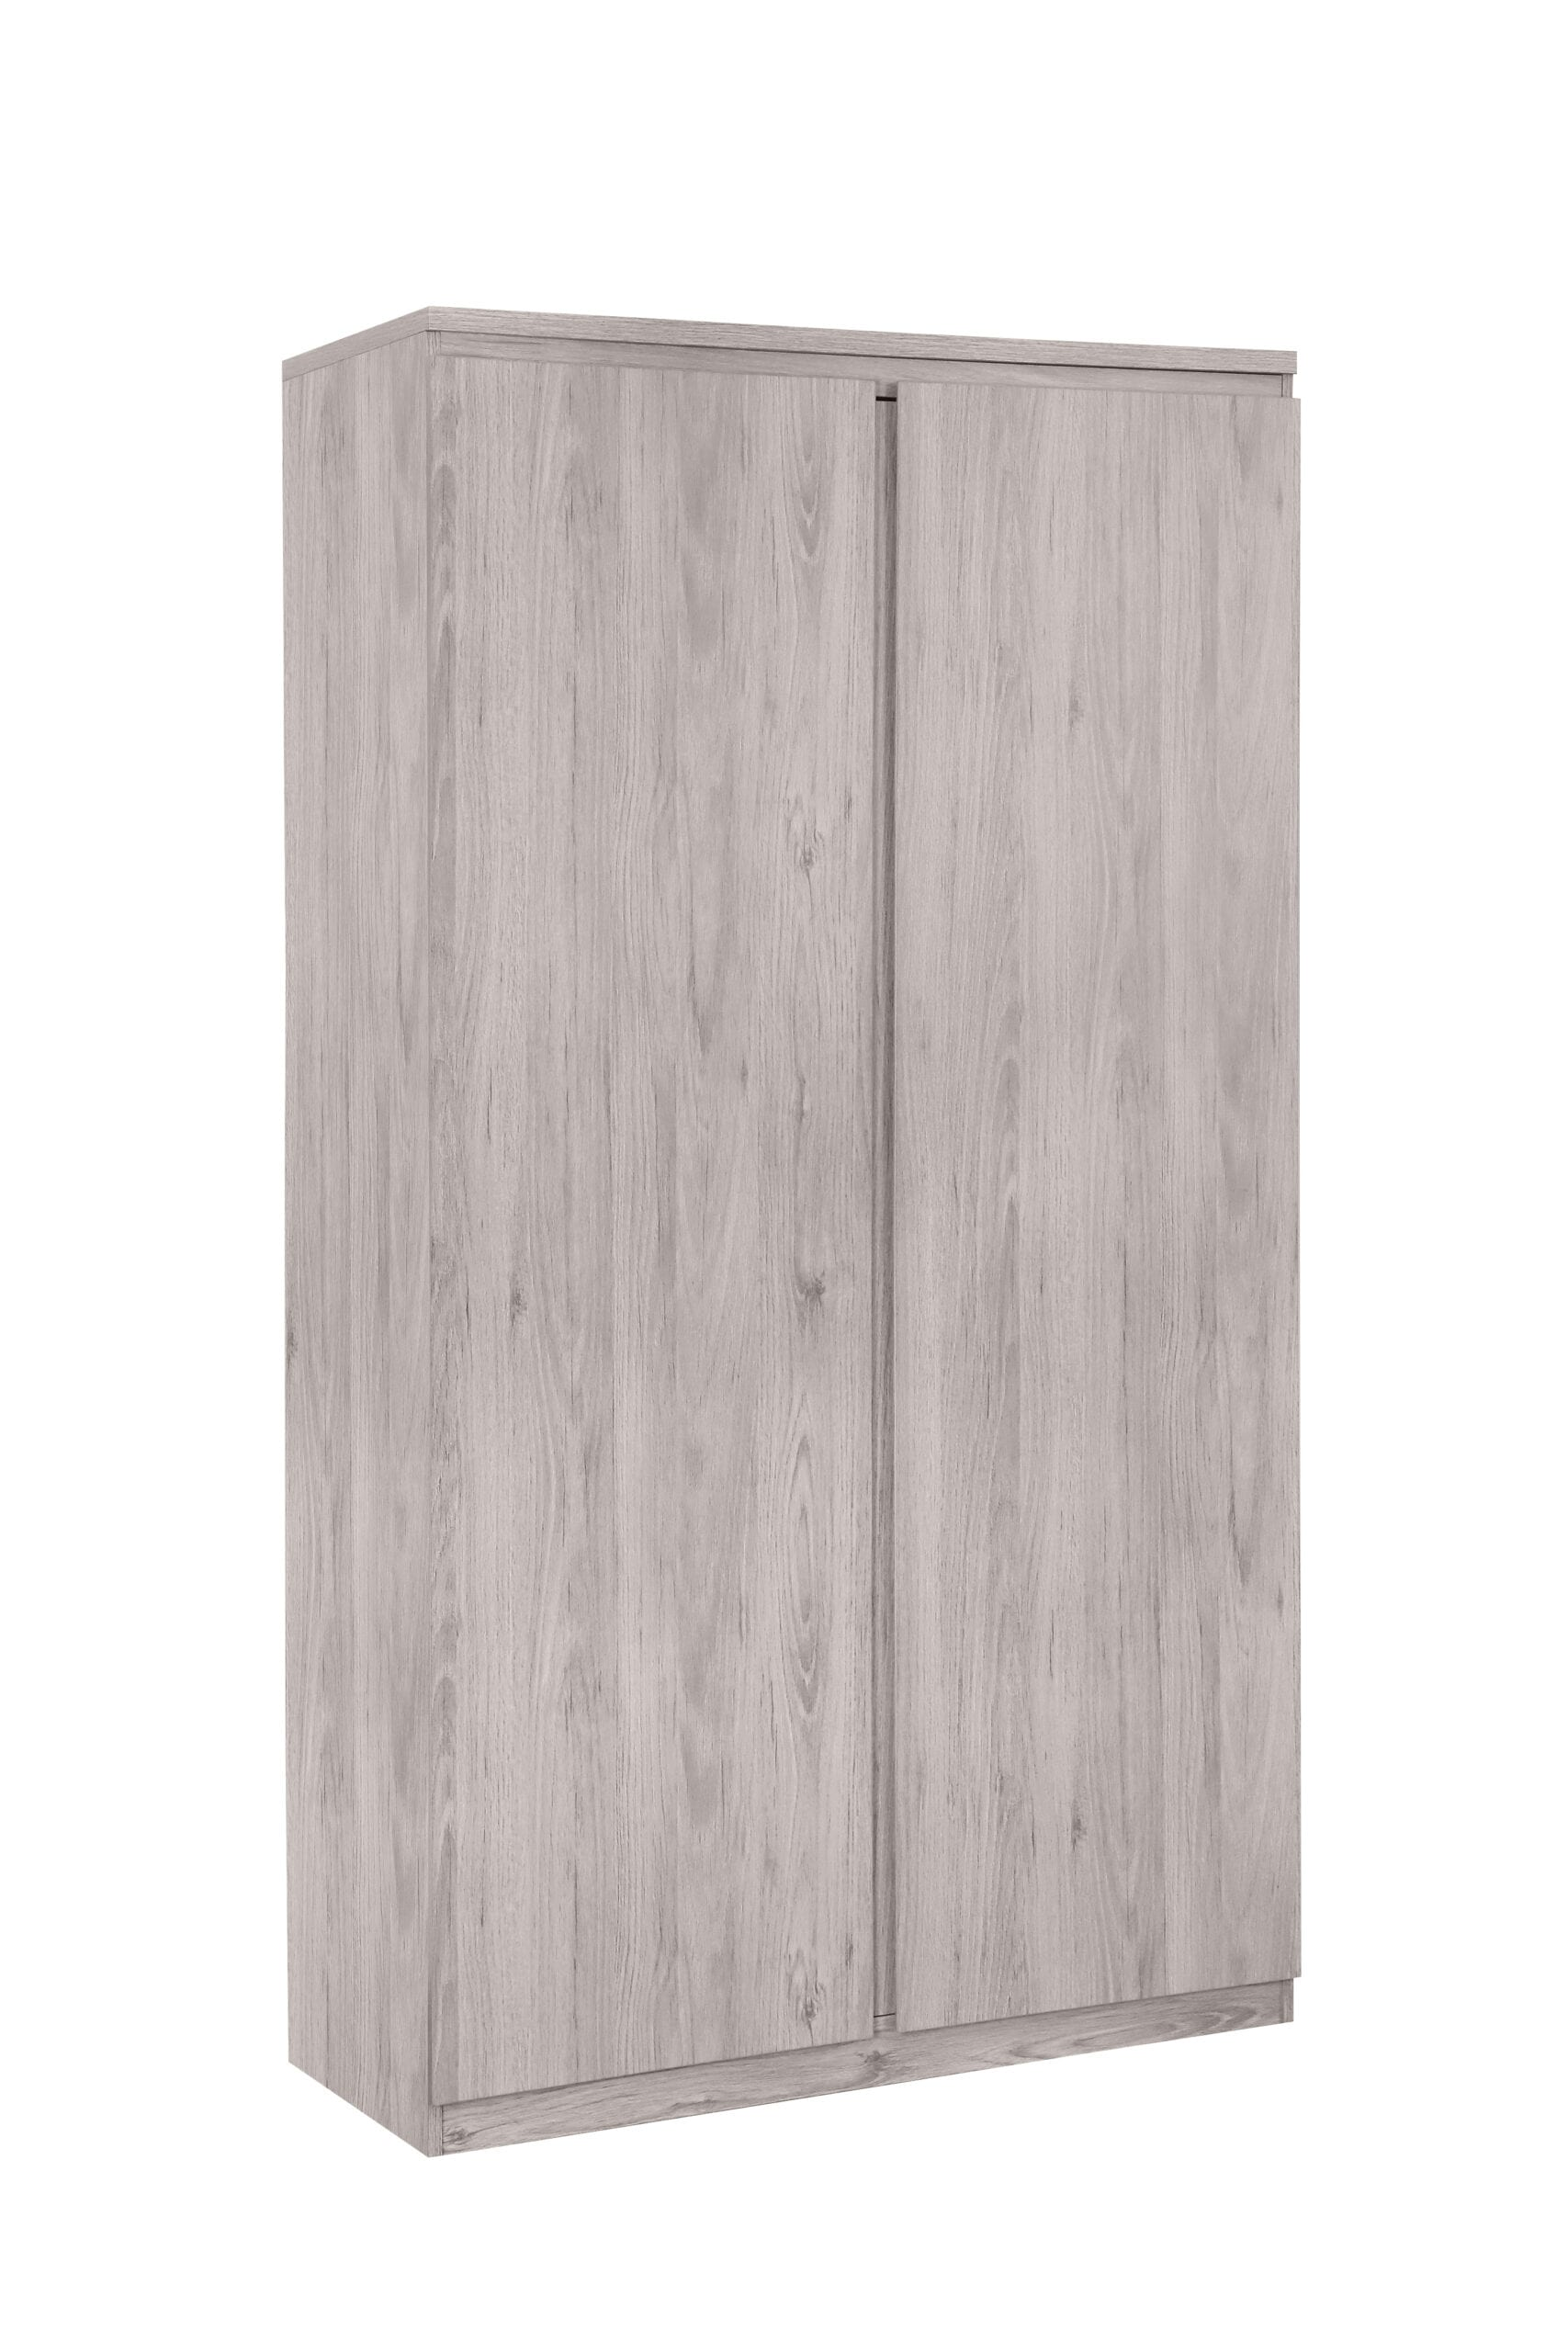 PLUTO 2 DOOR WARDROBE GREY OAK